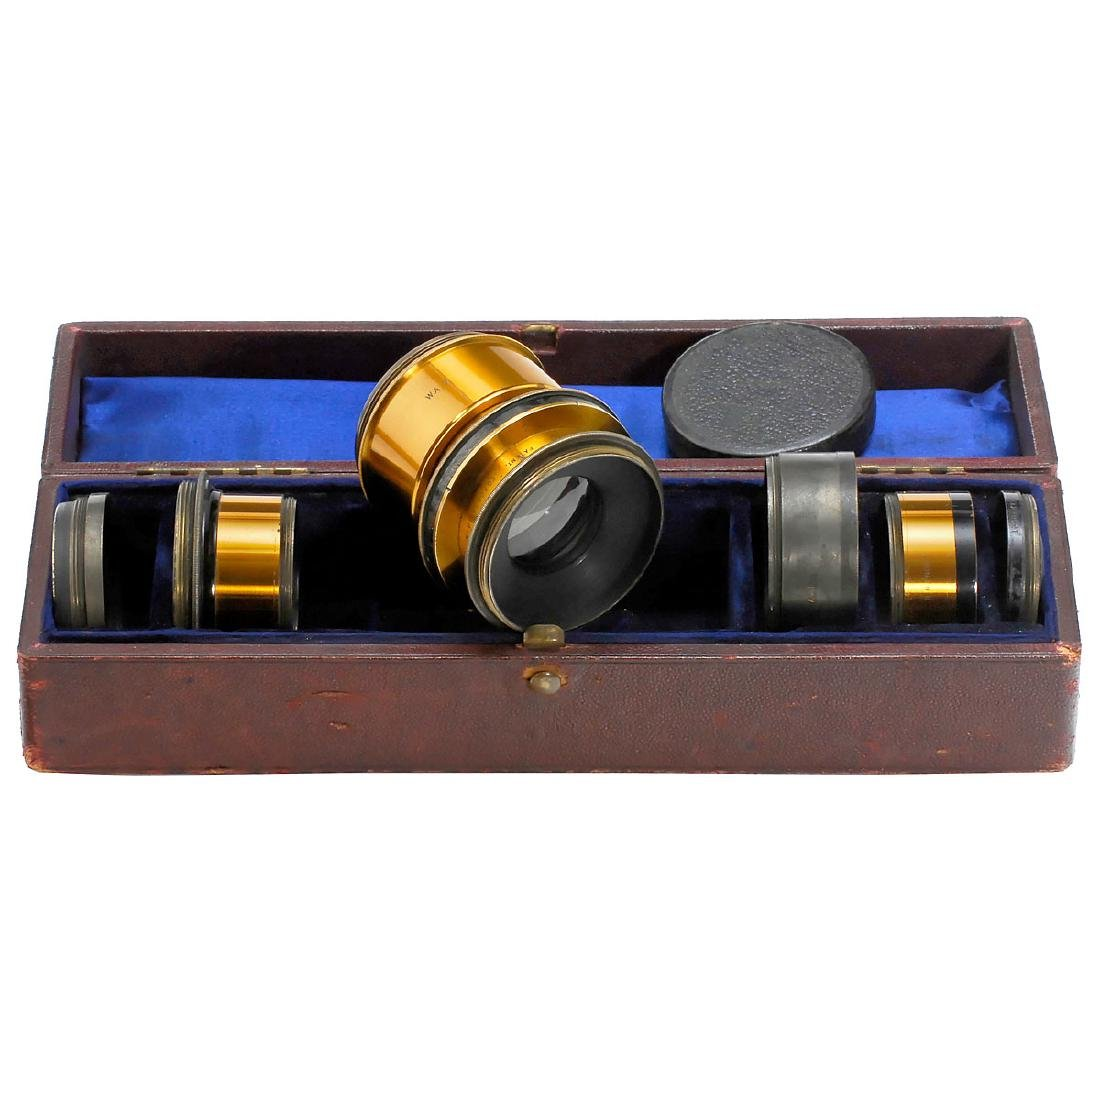 Lens Combination by Taylor Taylor & Hobson, c. 1900